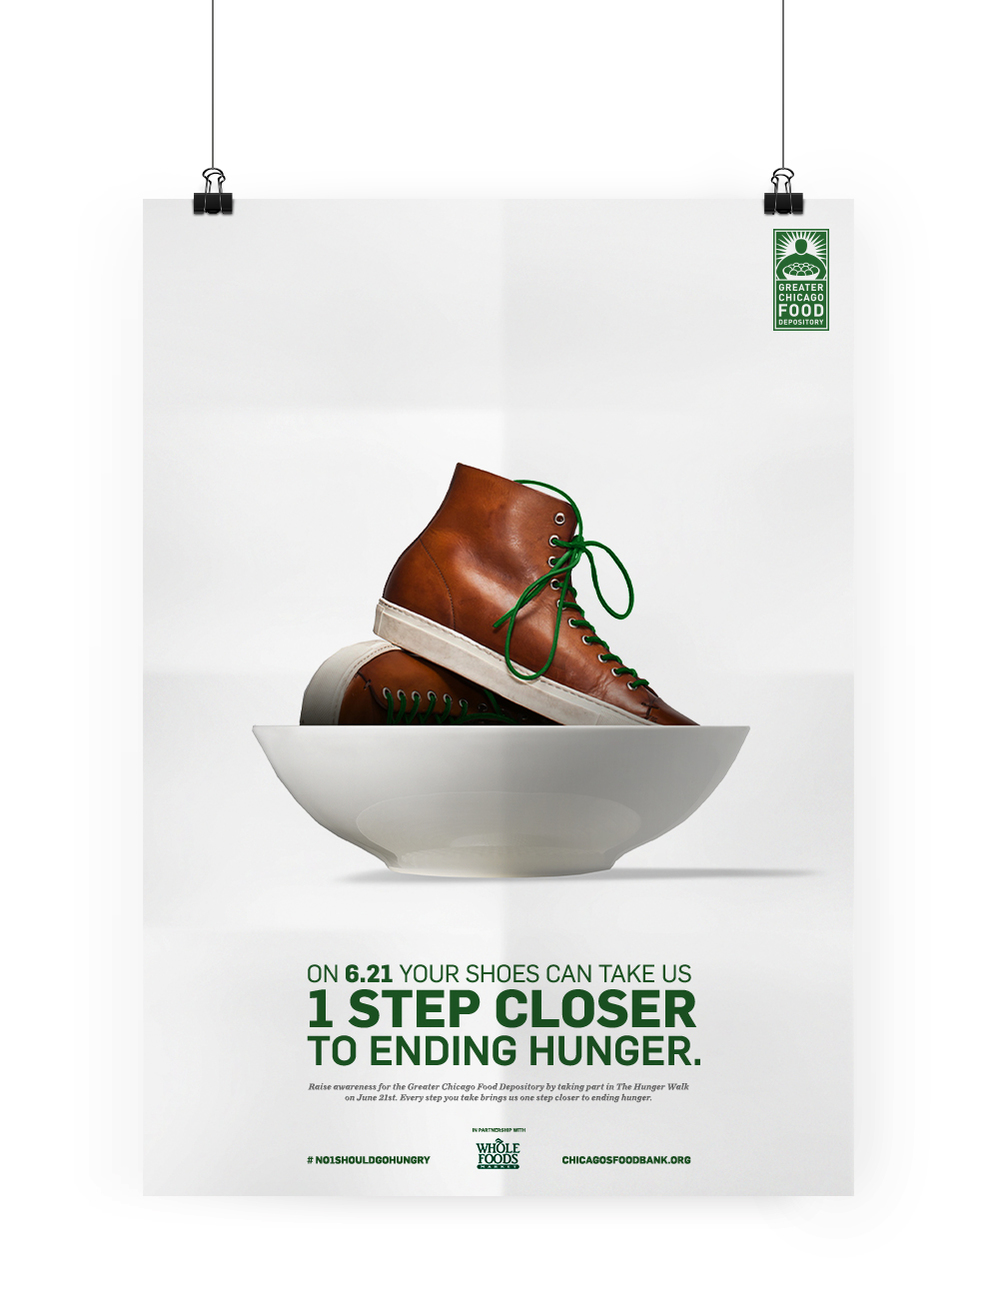 Whole Foods poster #2